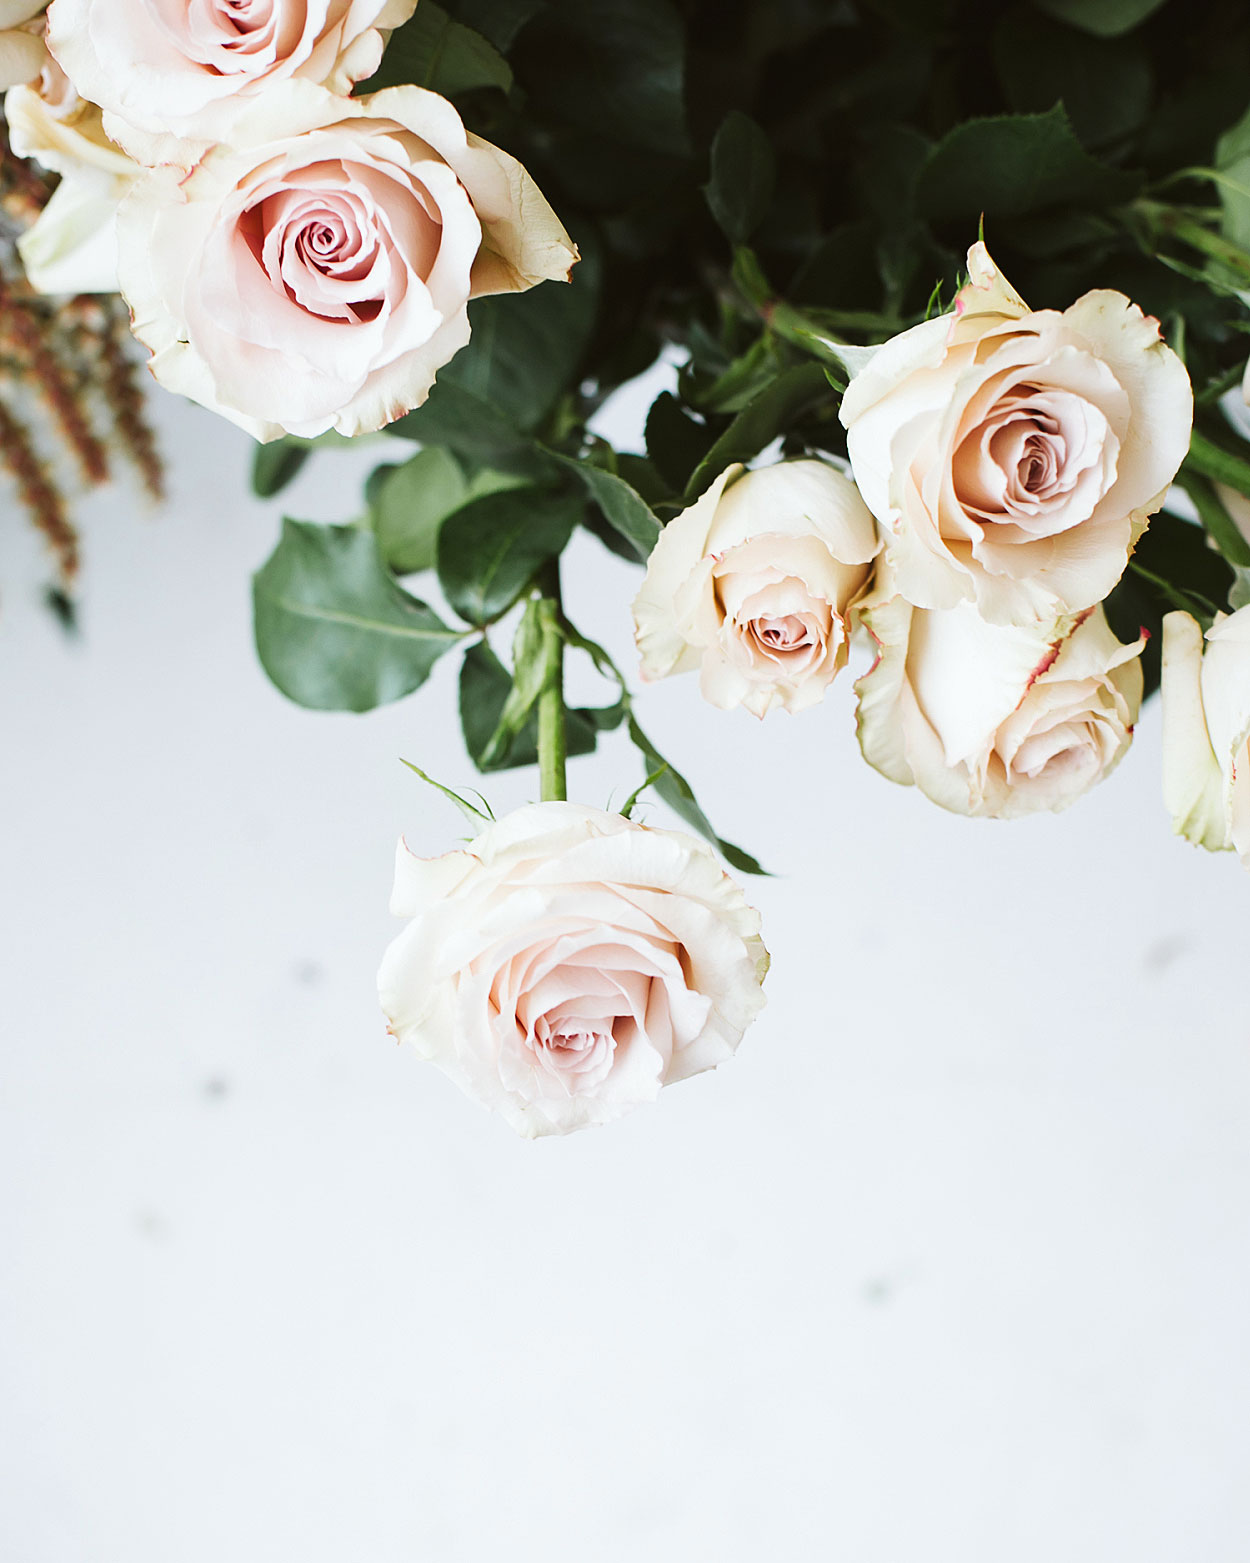 romantic-wedding-flowers-standard-rose-0516.jpg